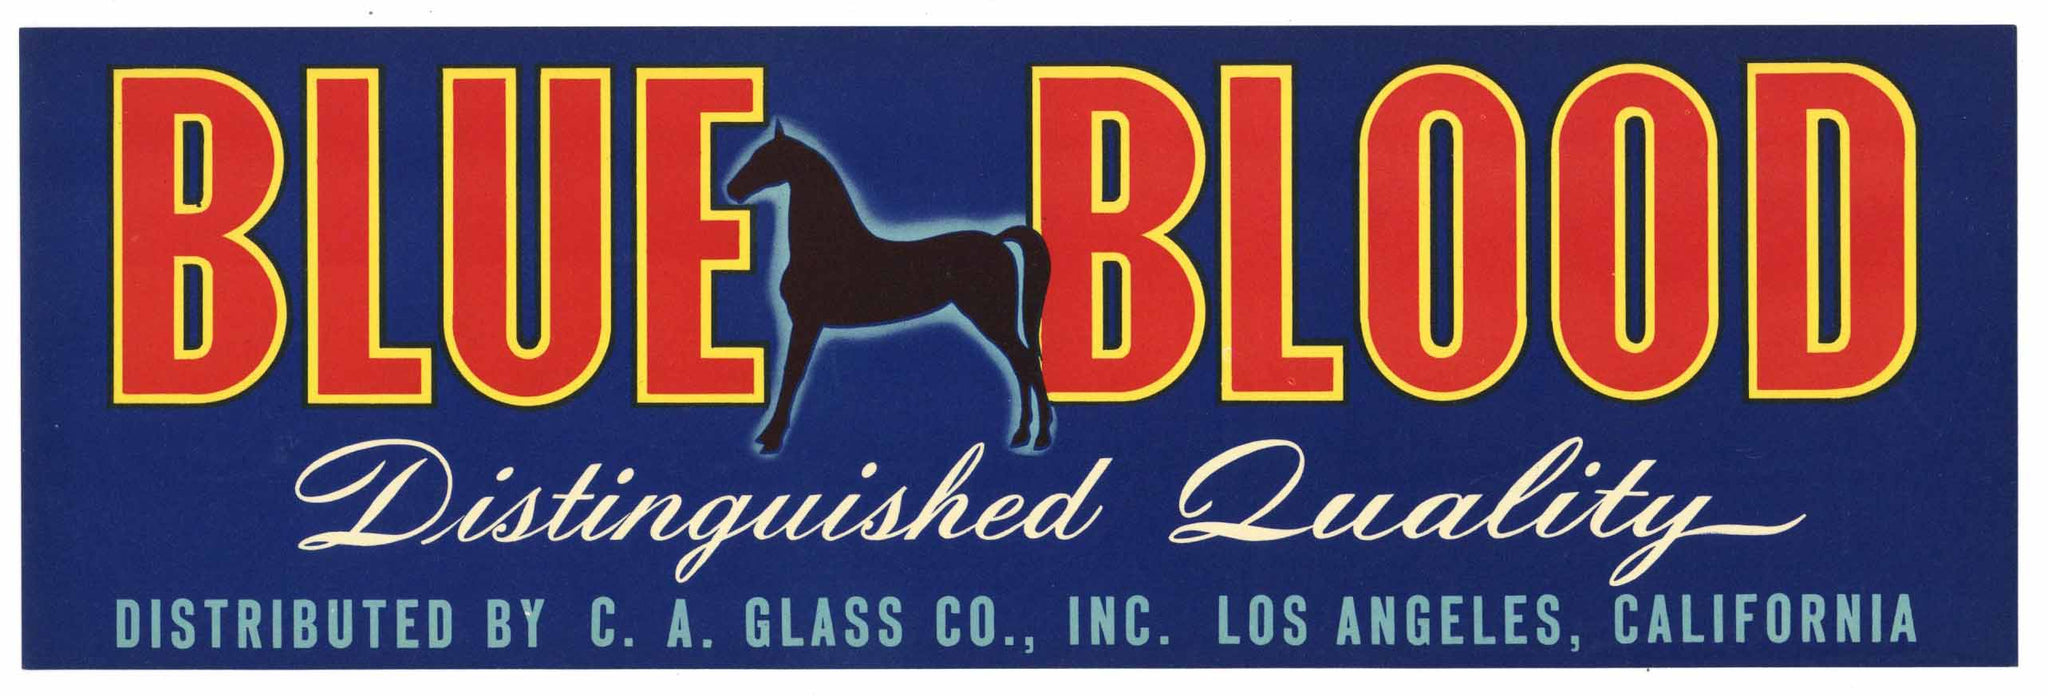 Blue Blood Brand Vintage Produce Crate Label